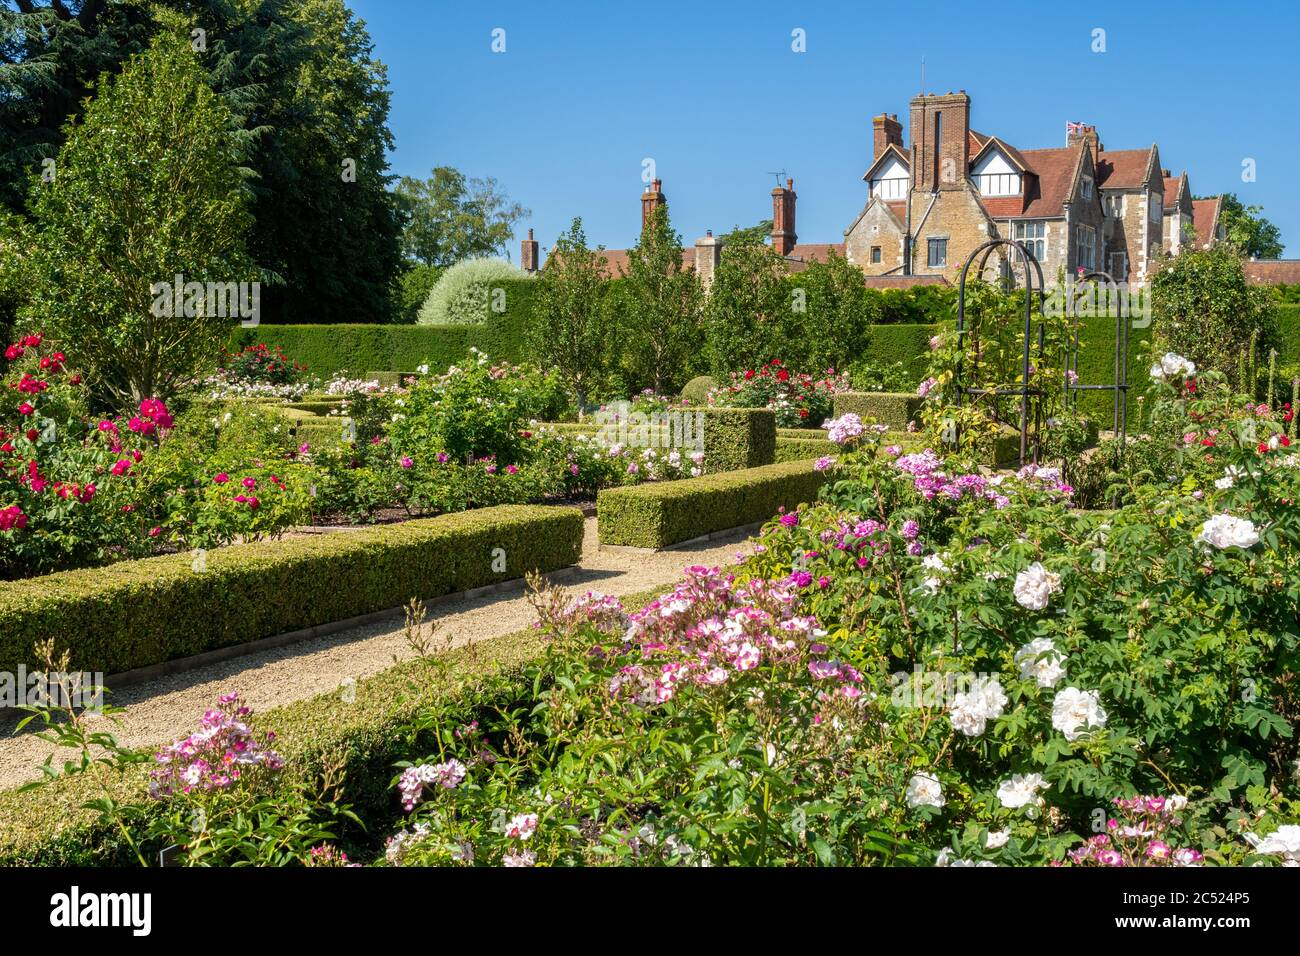 the-rose-garden-and-house-at-loseley-park-surrey-uk-during-june-2C524P5.jpg